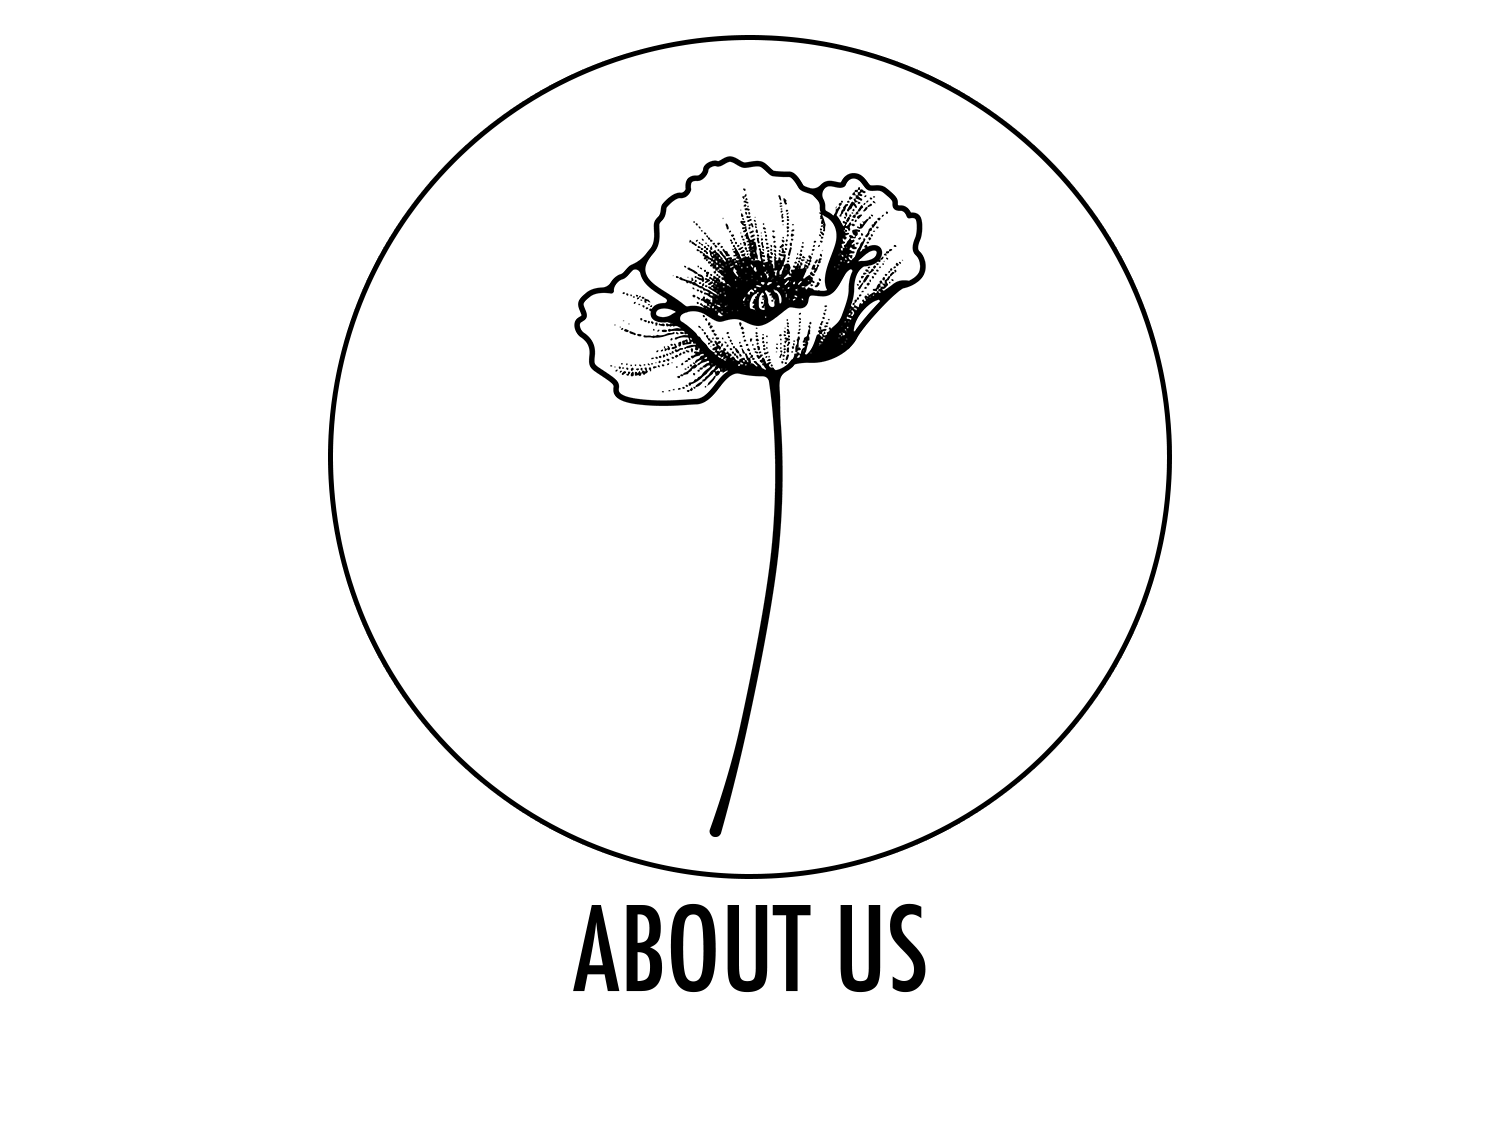 the-poppyfield-agency-about-us.png